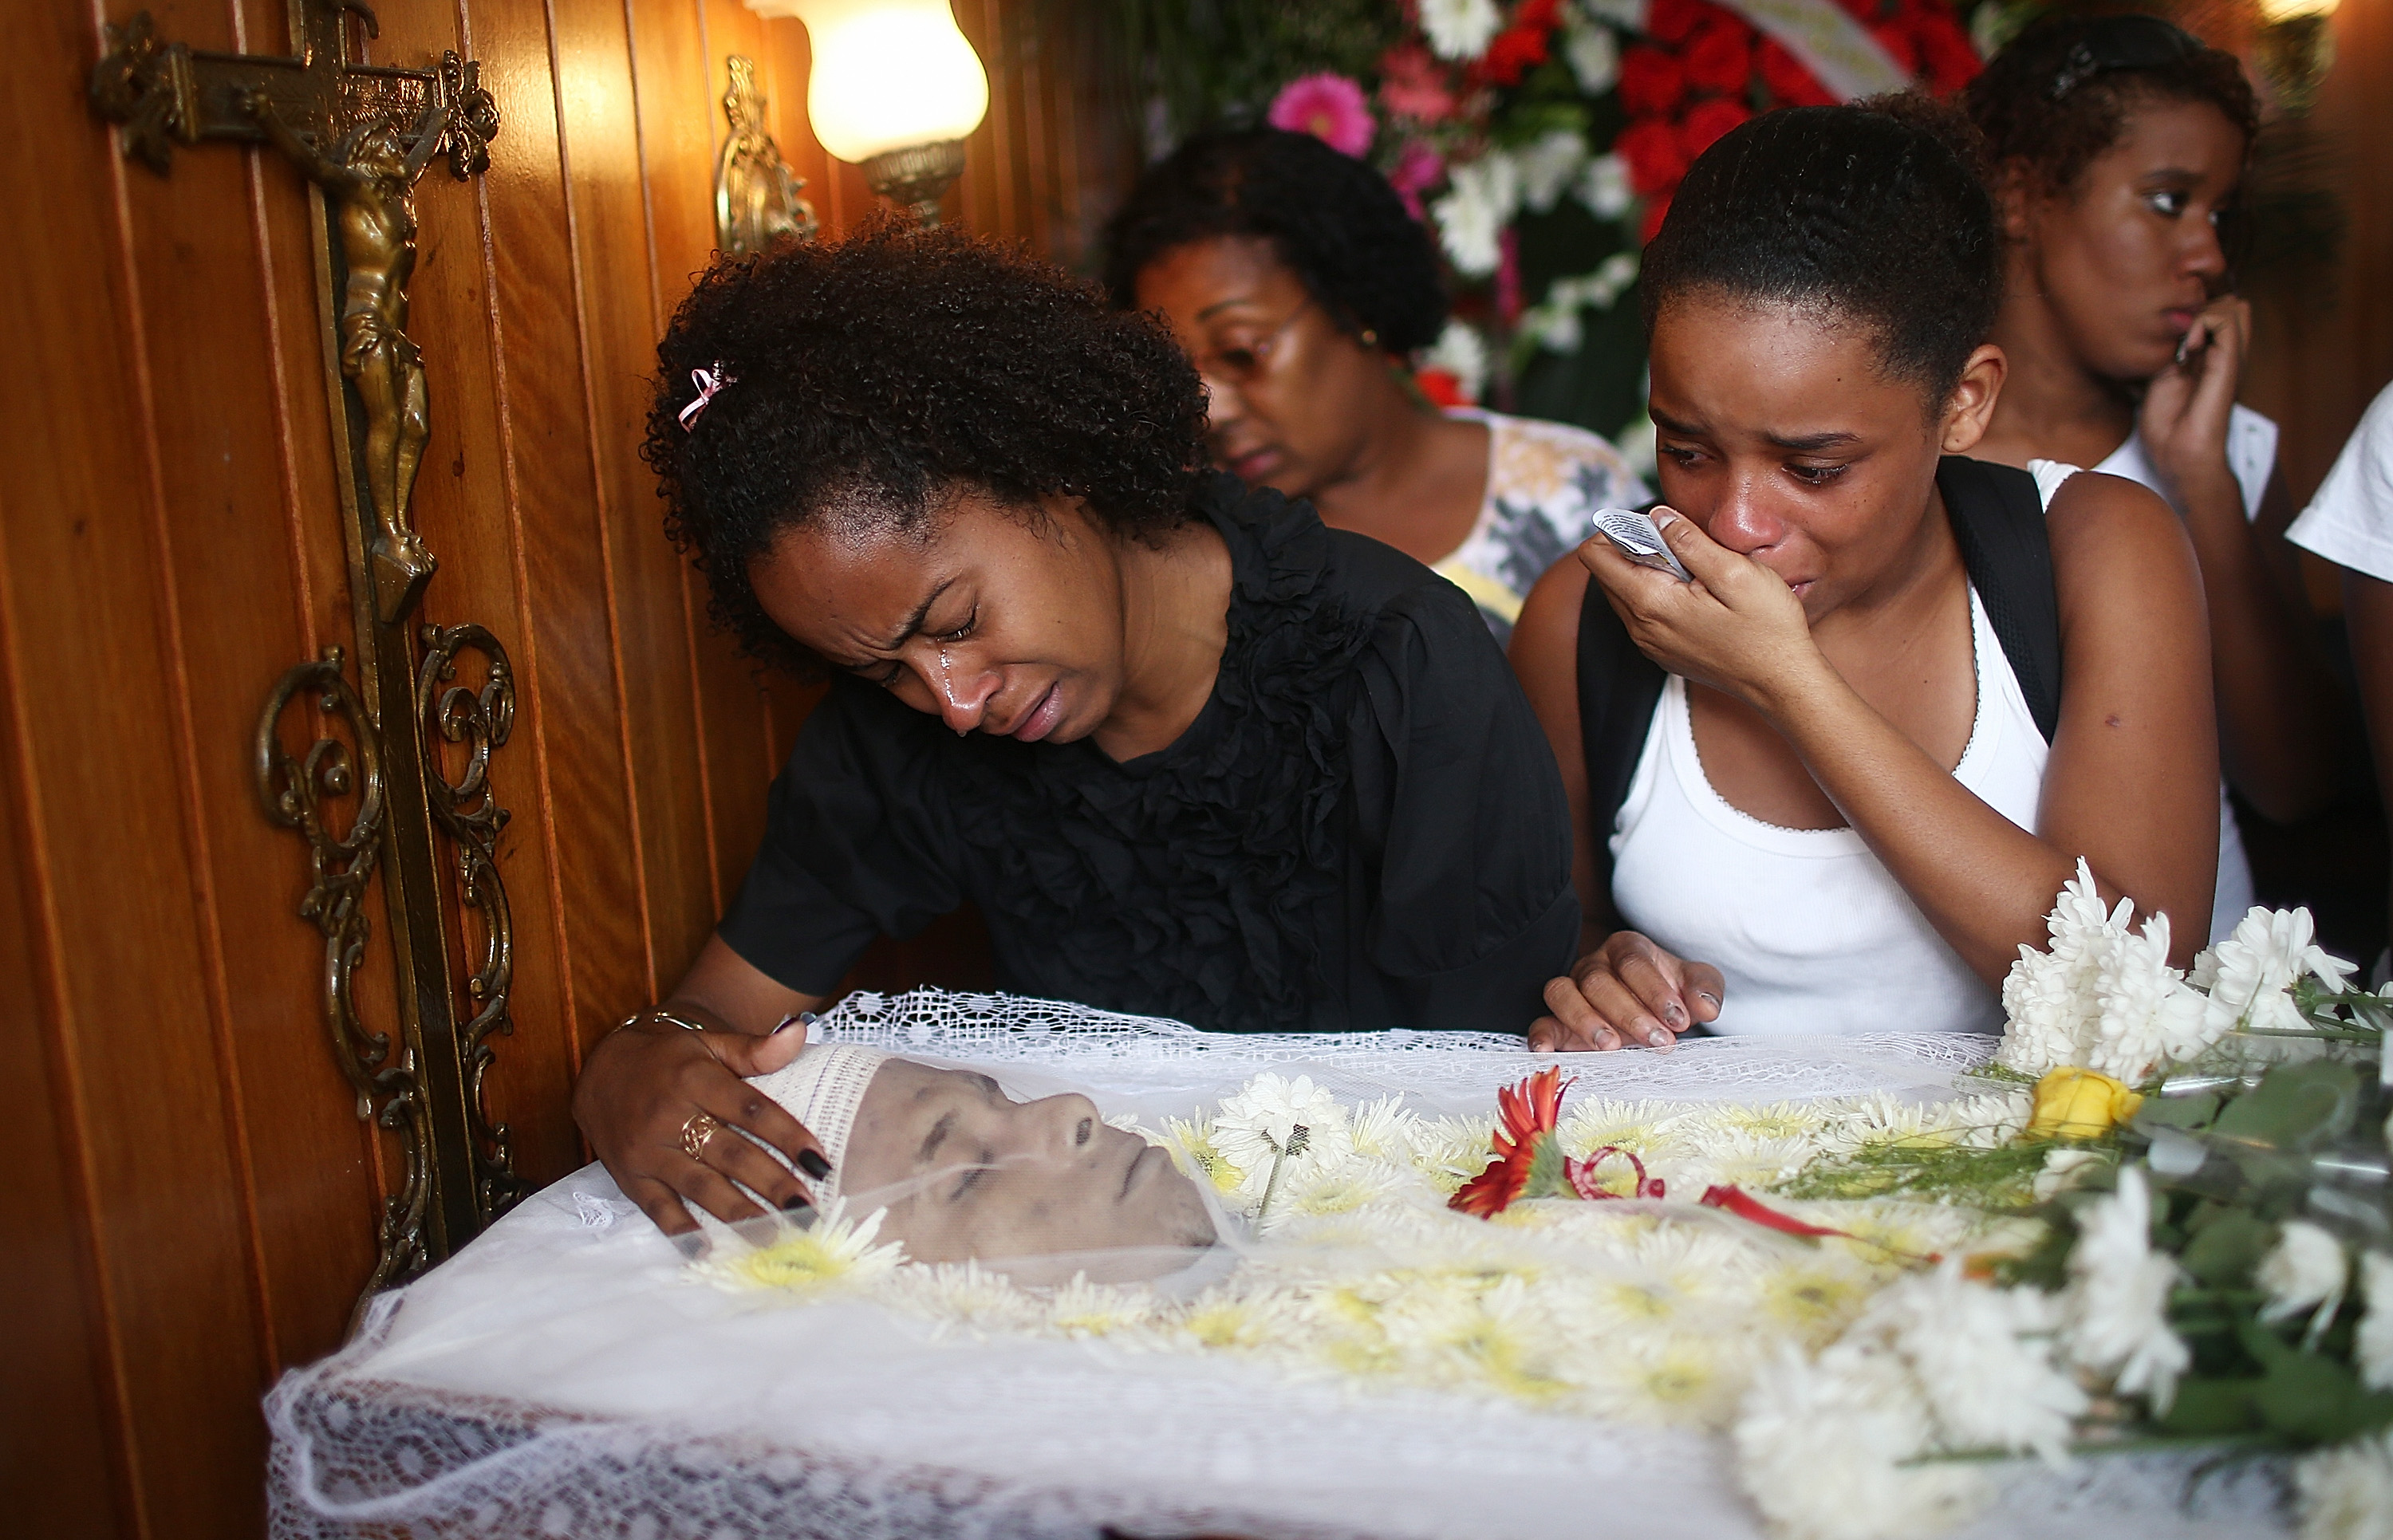 Mourners gather over the body of dancer Douglas Rafael da Silva at his funeral, after he was shot and killed, on April 24, 2014 in Rio de Janeiro.